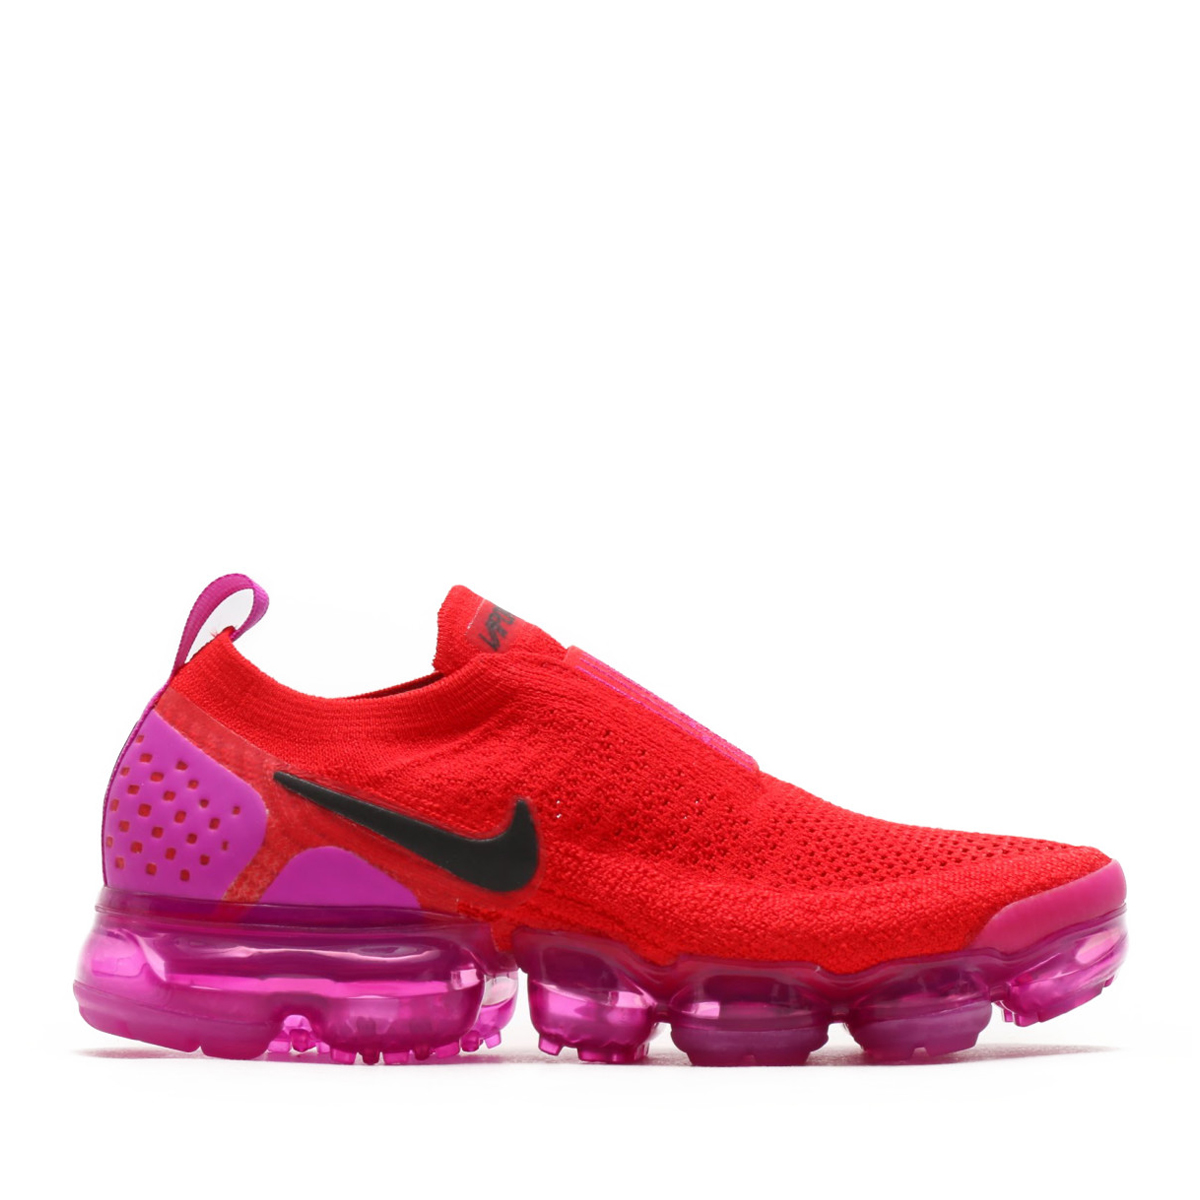 188ff9e7831 NIKE WMNS AIR VAPORMAX FK MOC 2 (Nike women air vapor max fried food knit  mock 2) UNIVERSITY RED BLACK-FUCHSIA BLAST 18SU-S